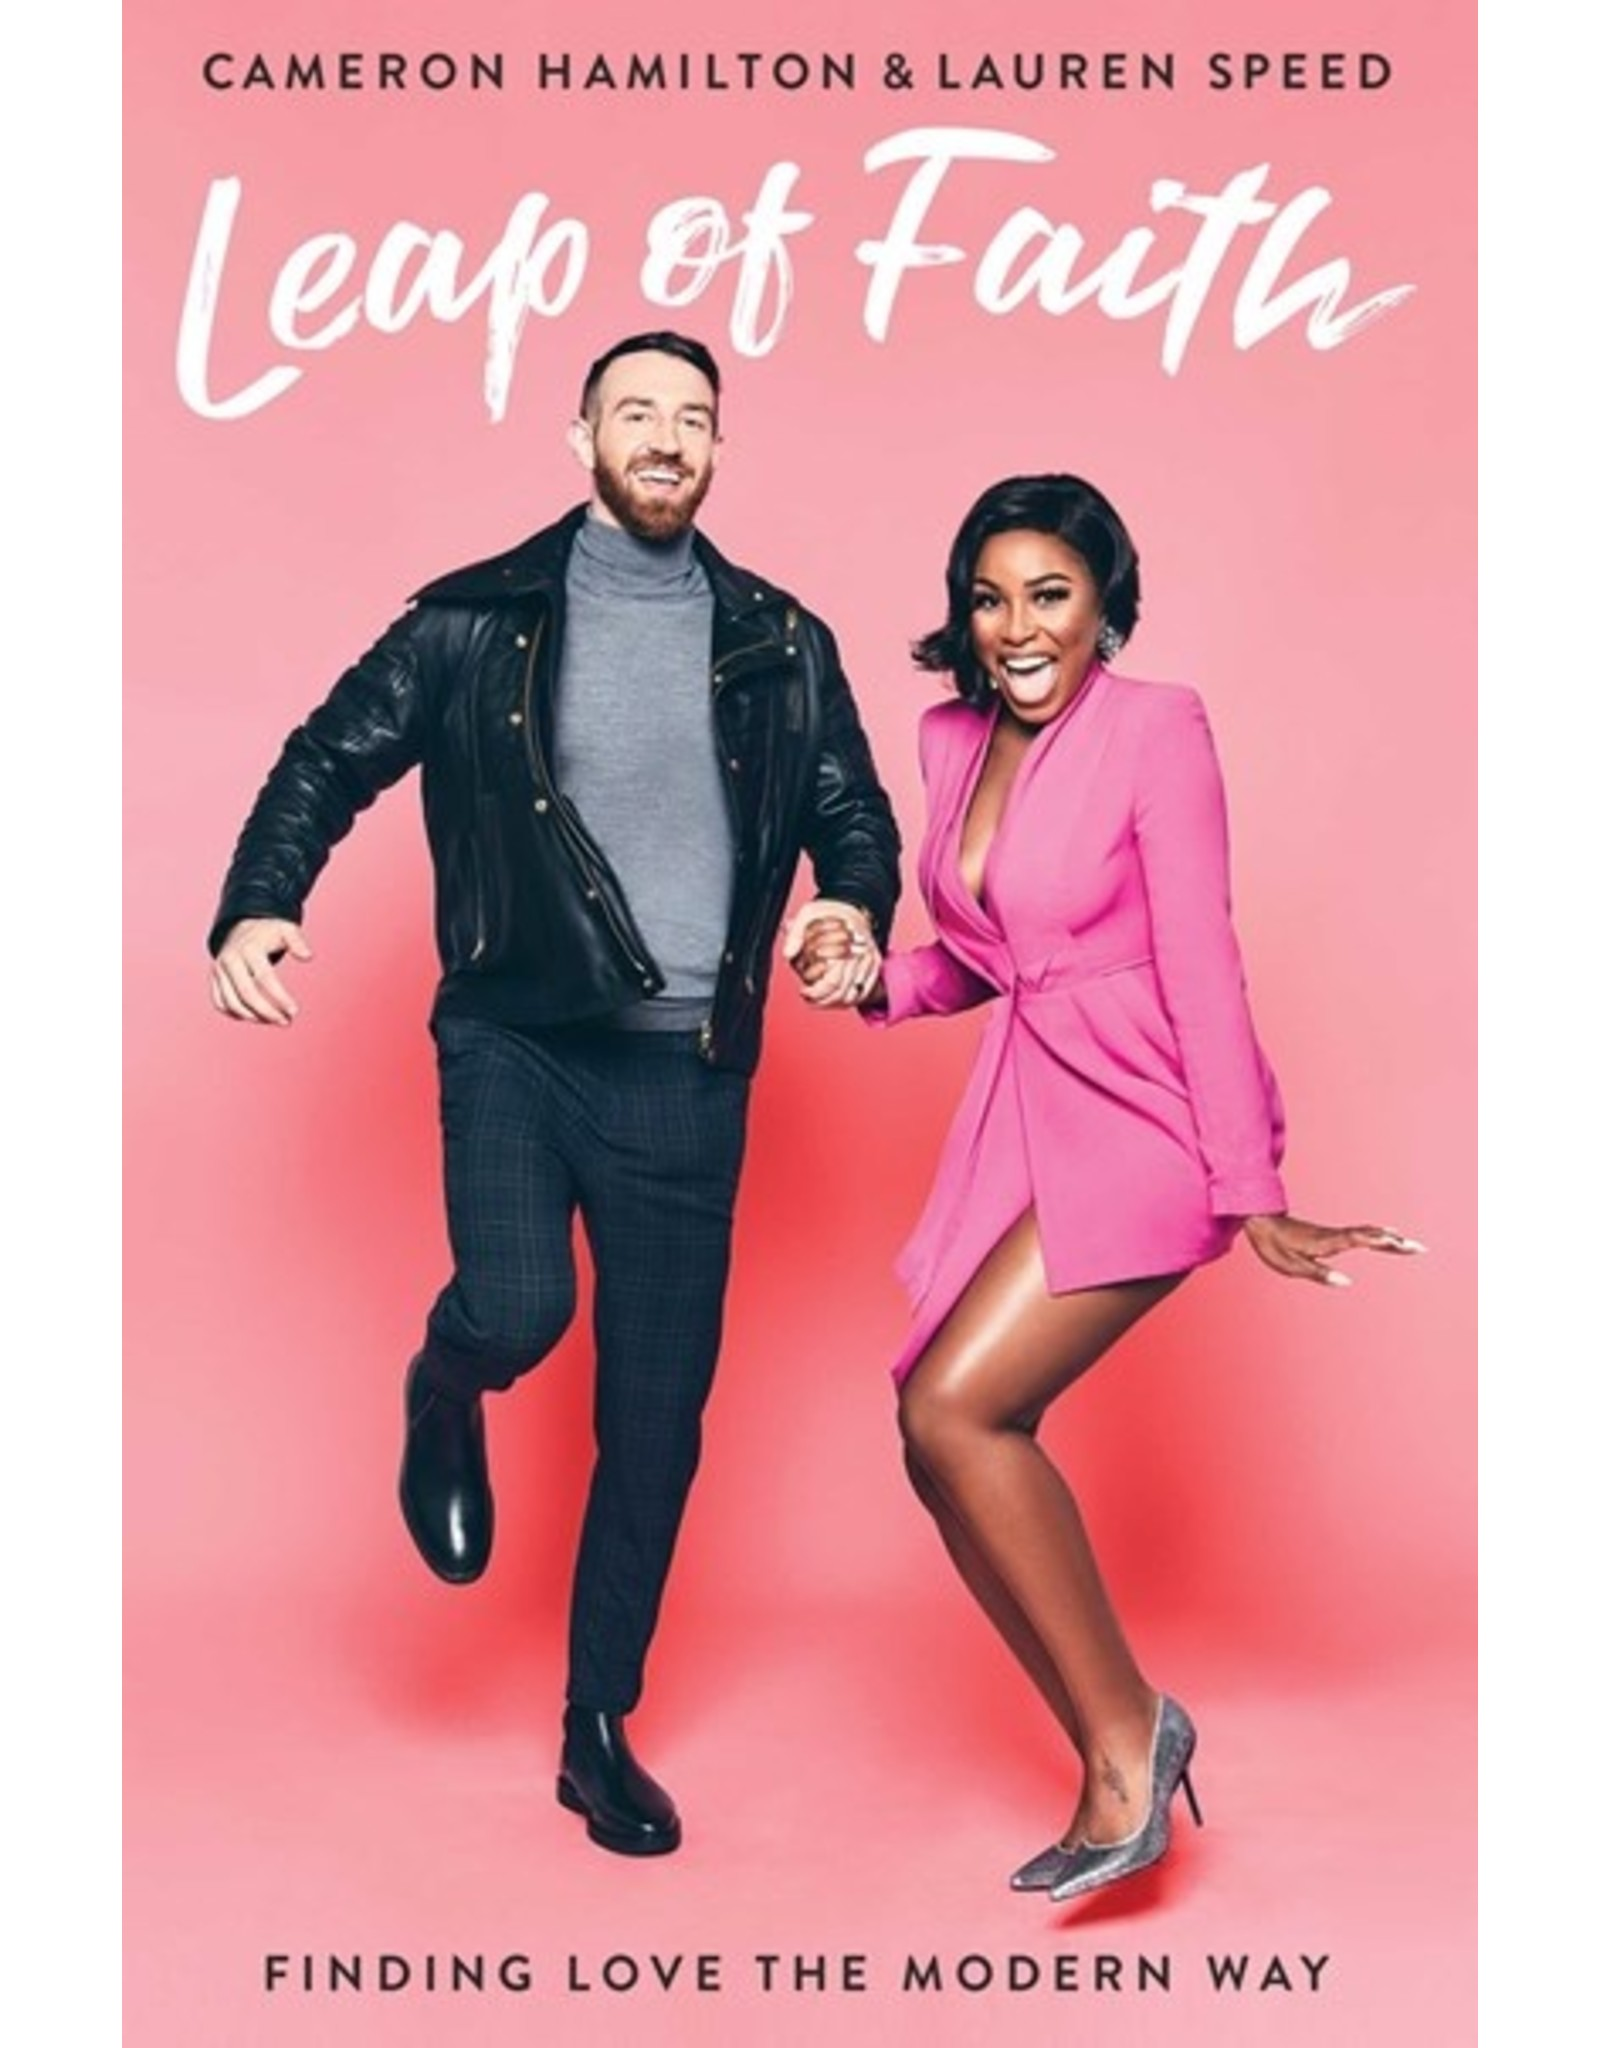 Books Leap of Faith : Finding Love the Modern Way by Cameron Hamilton and Lauren Speed - Pre Order   (Signed Copies) (June 15th Event)